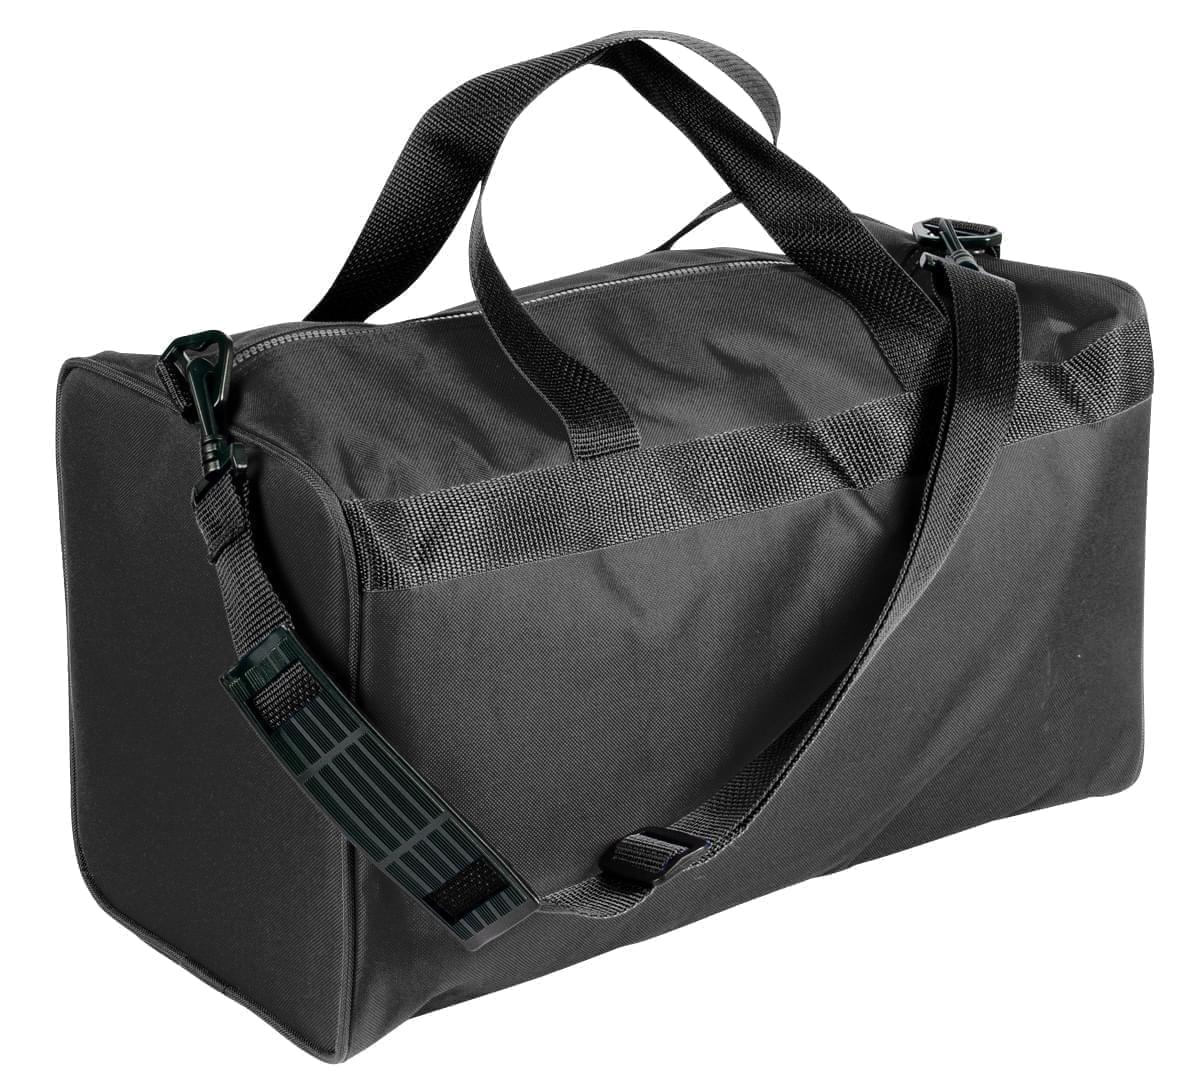 USA Made Nylon Poly Weekend Duffles, Black-Black, WLKX31AAOR